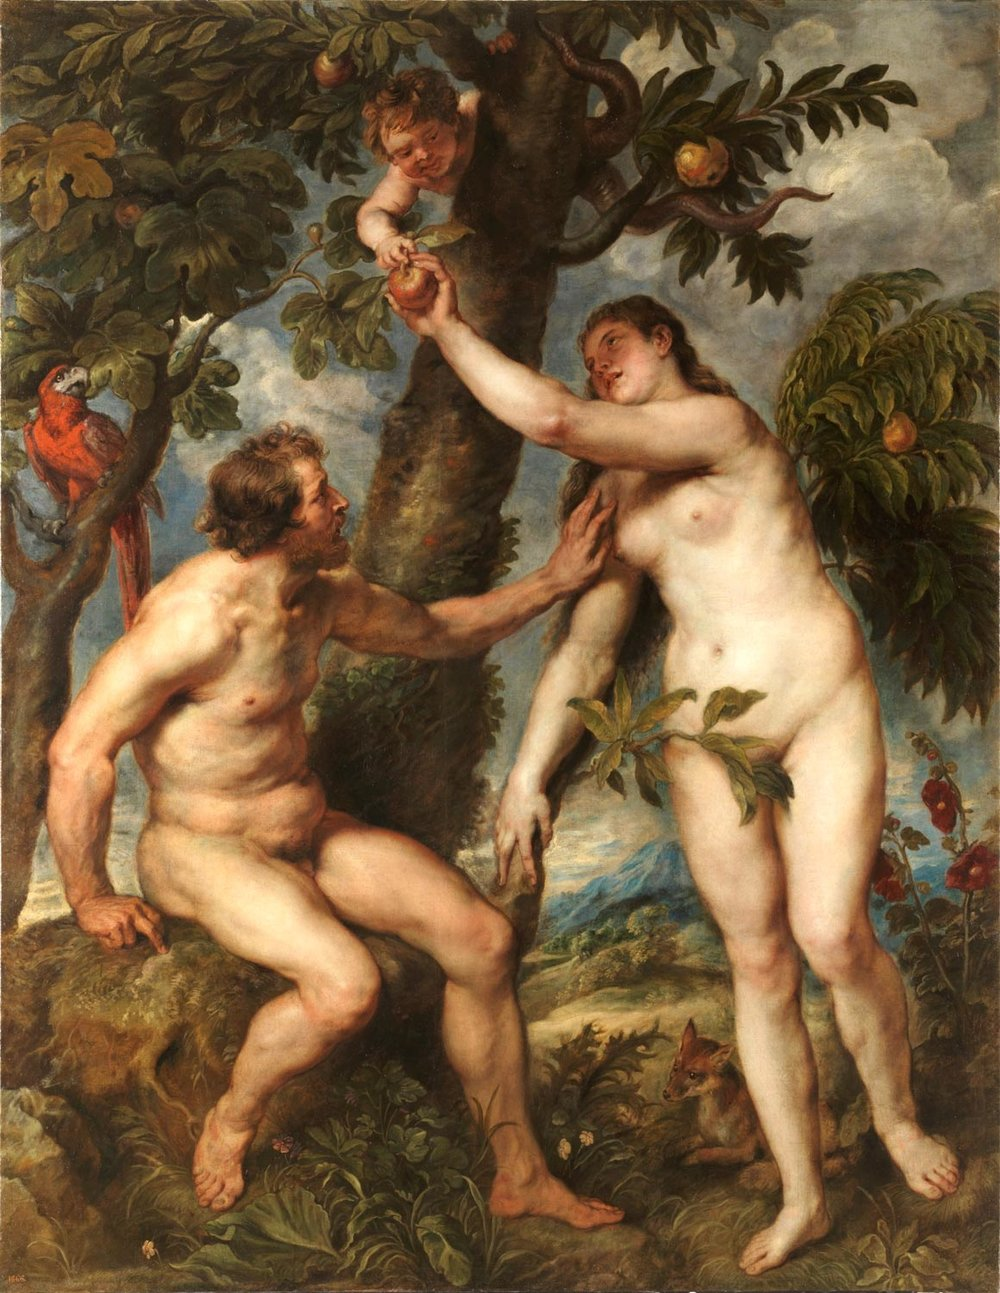 The Fall of Man, Adam and Eve, Pieter Paul Rubens 1629